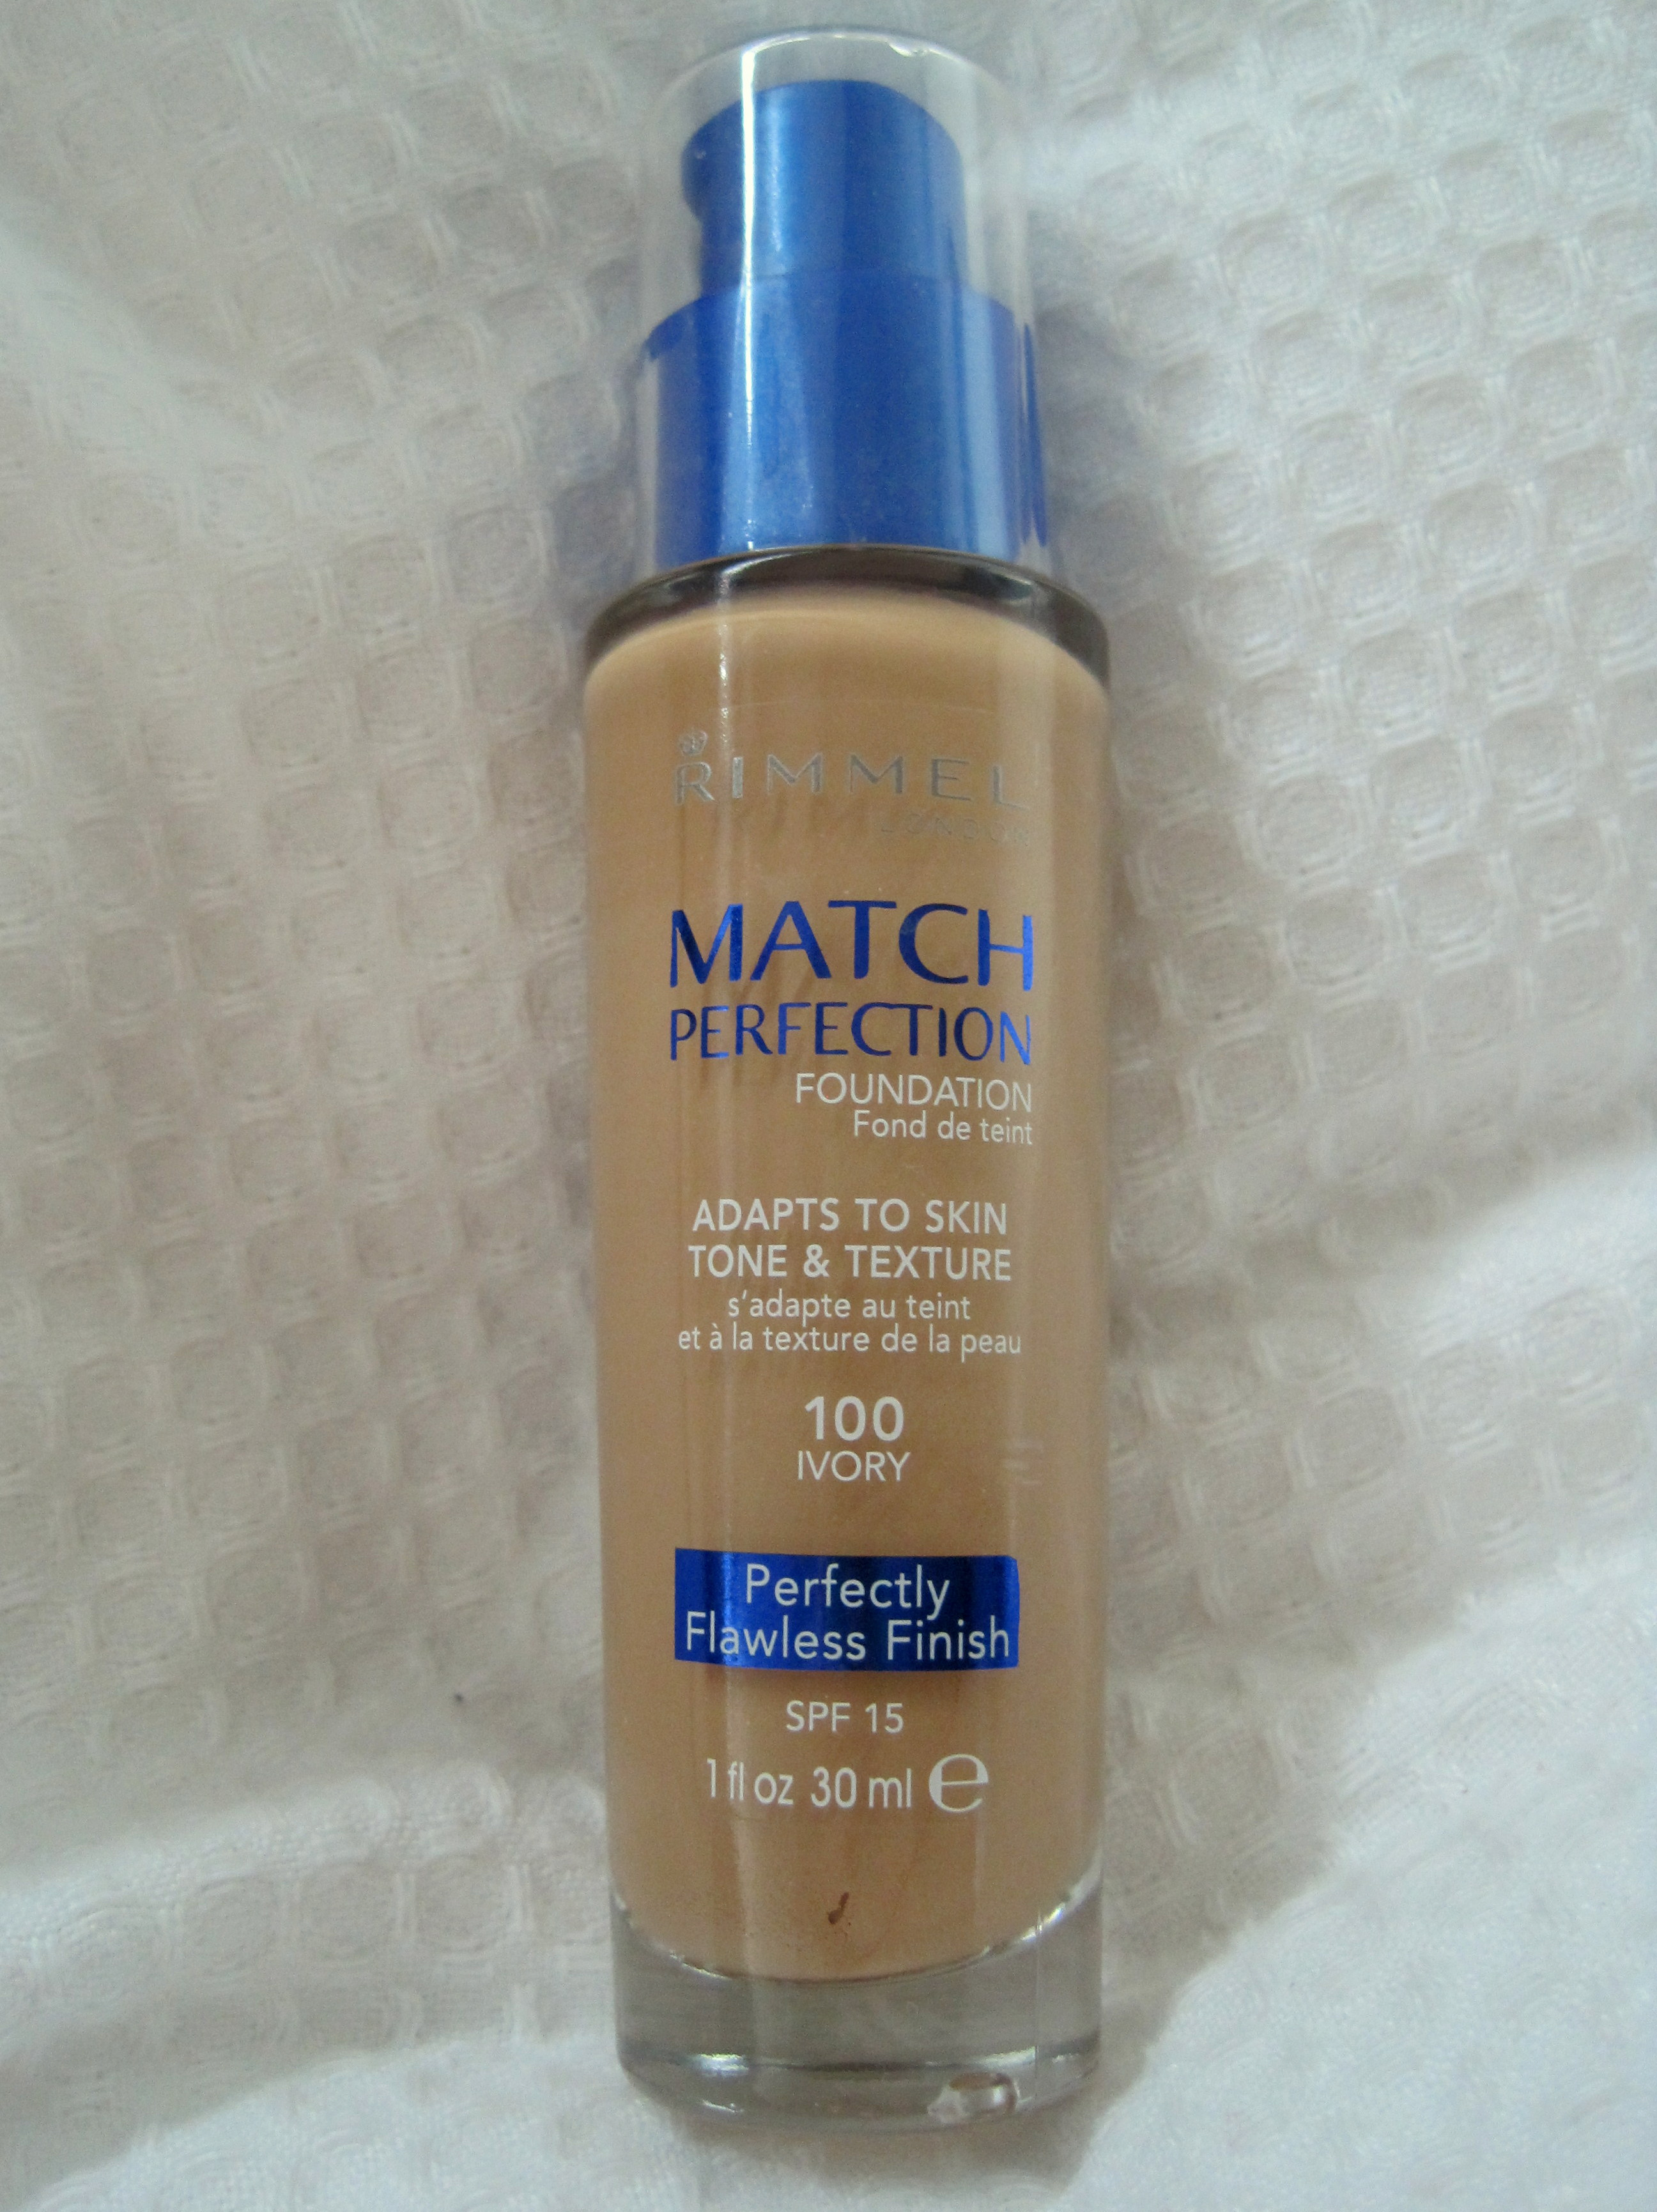 Review Rimmel Match Perfection Foundation in 100 Ivory